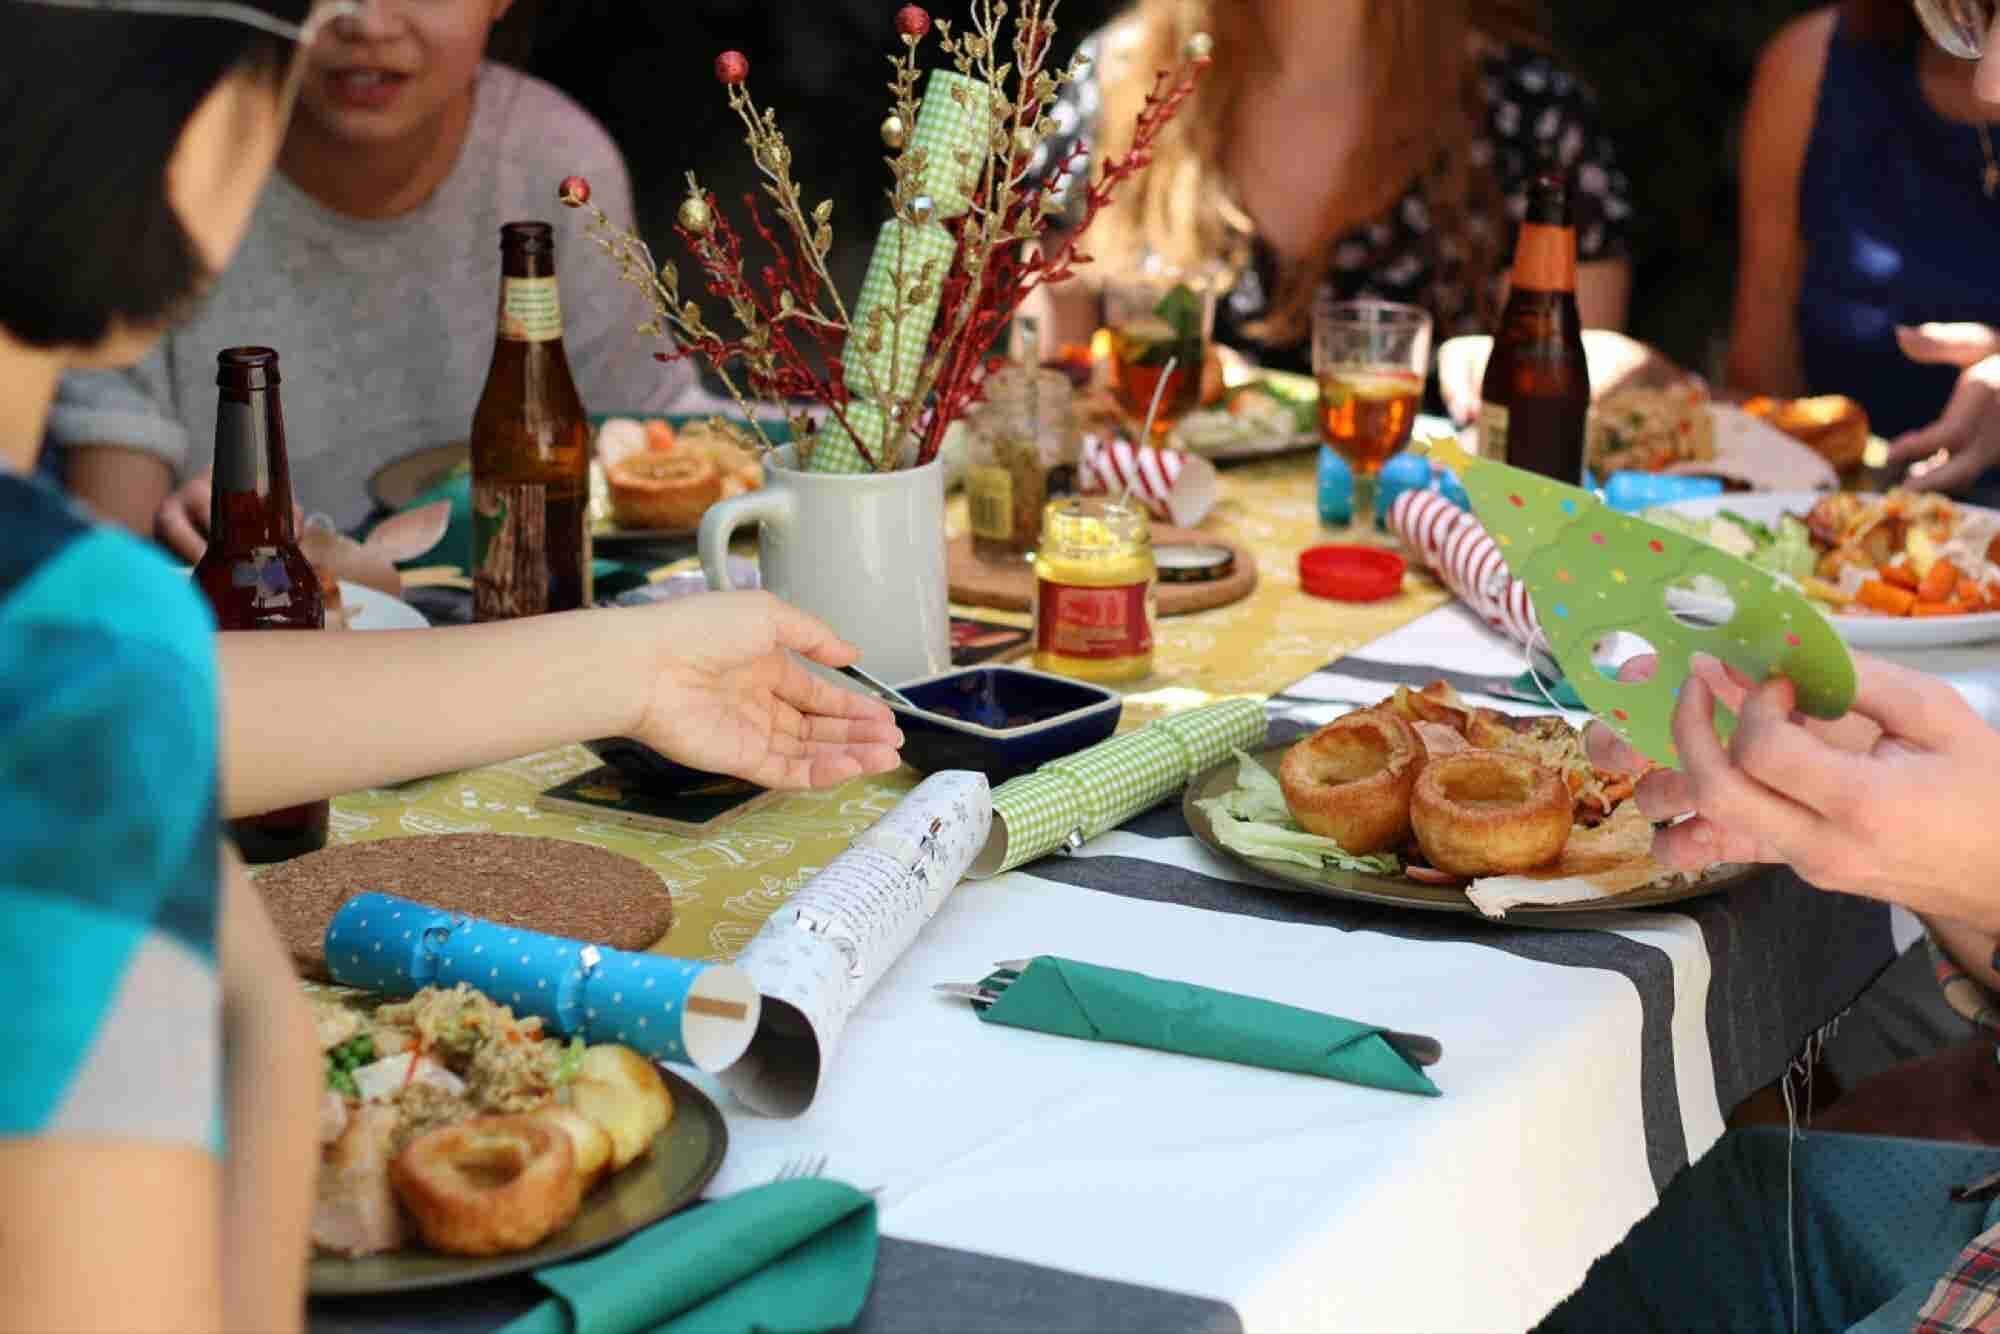 7 Tips for Enjoying Holiday Dining Without Forgetting Your Manners